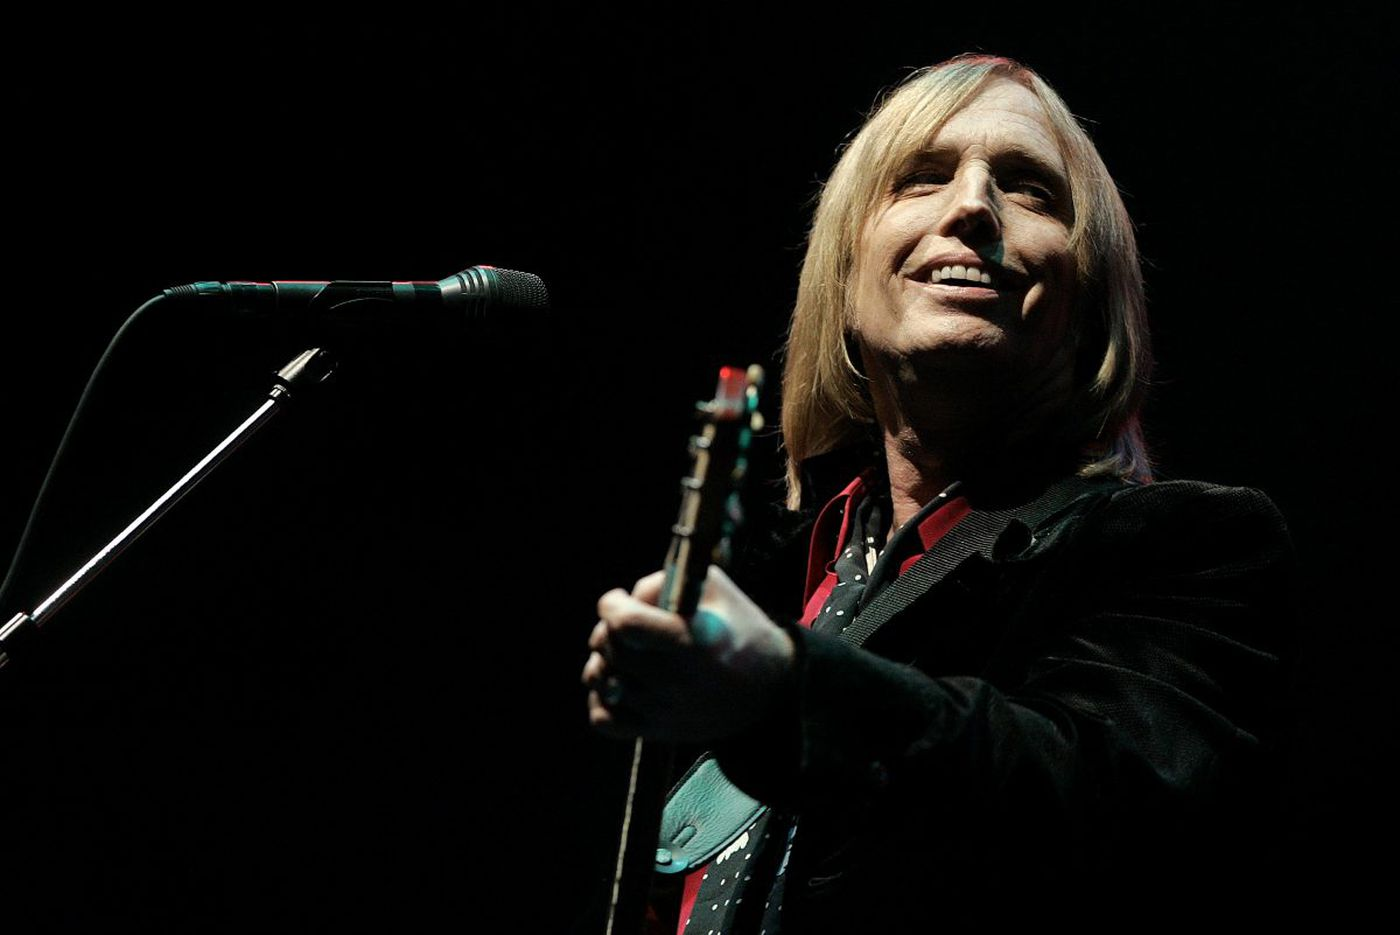 Final interview: Tom Petty's death comes just days after an introspective interview